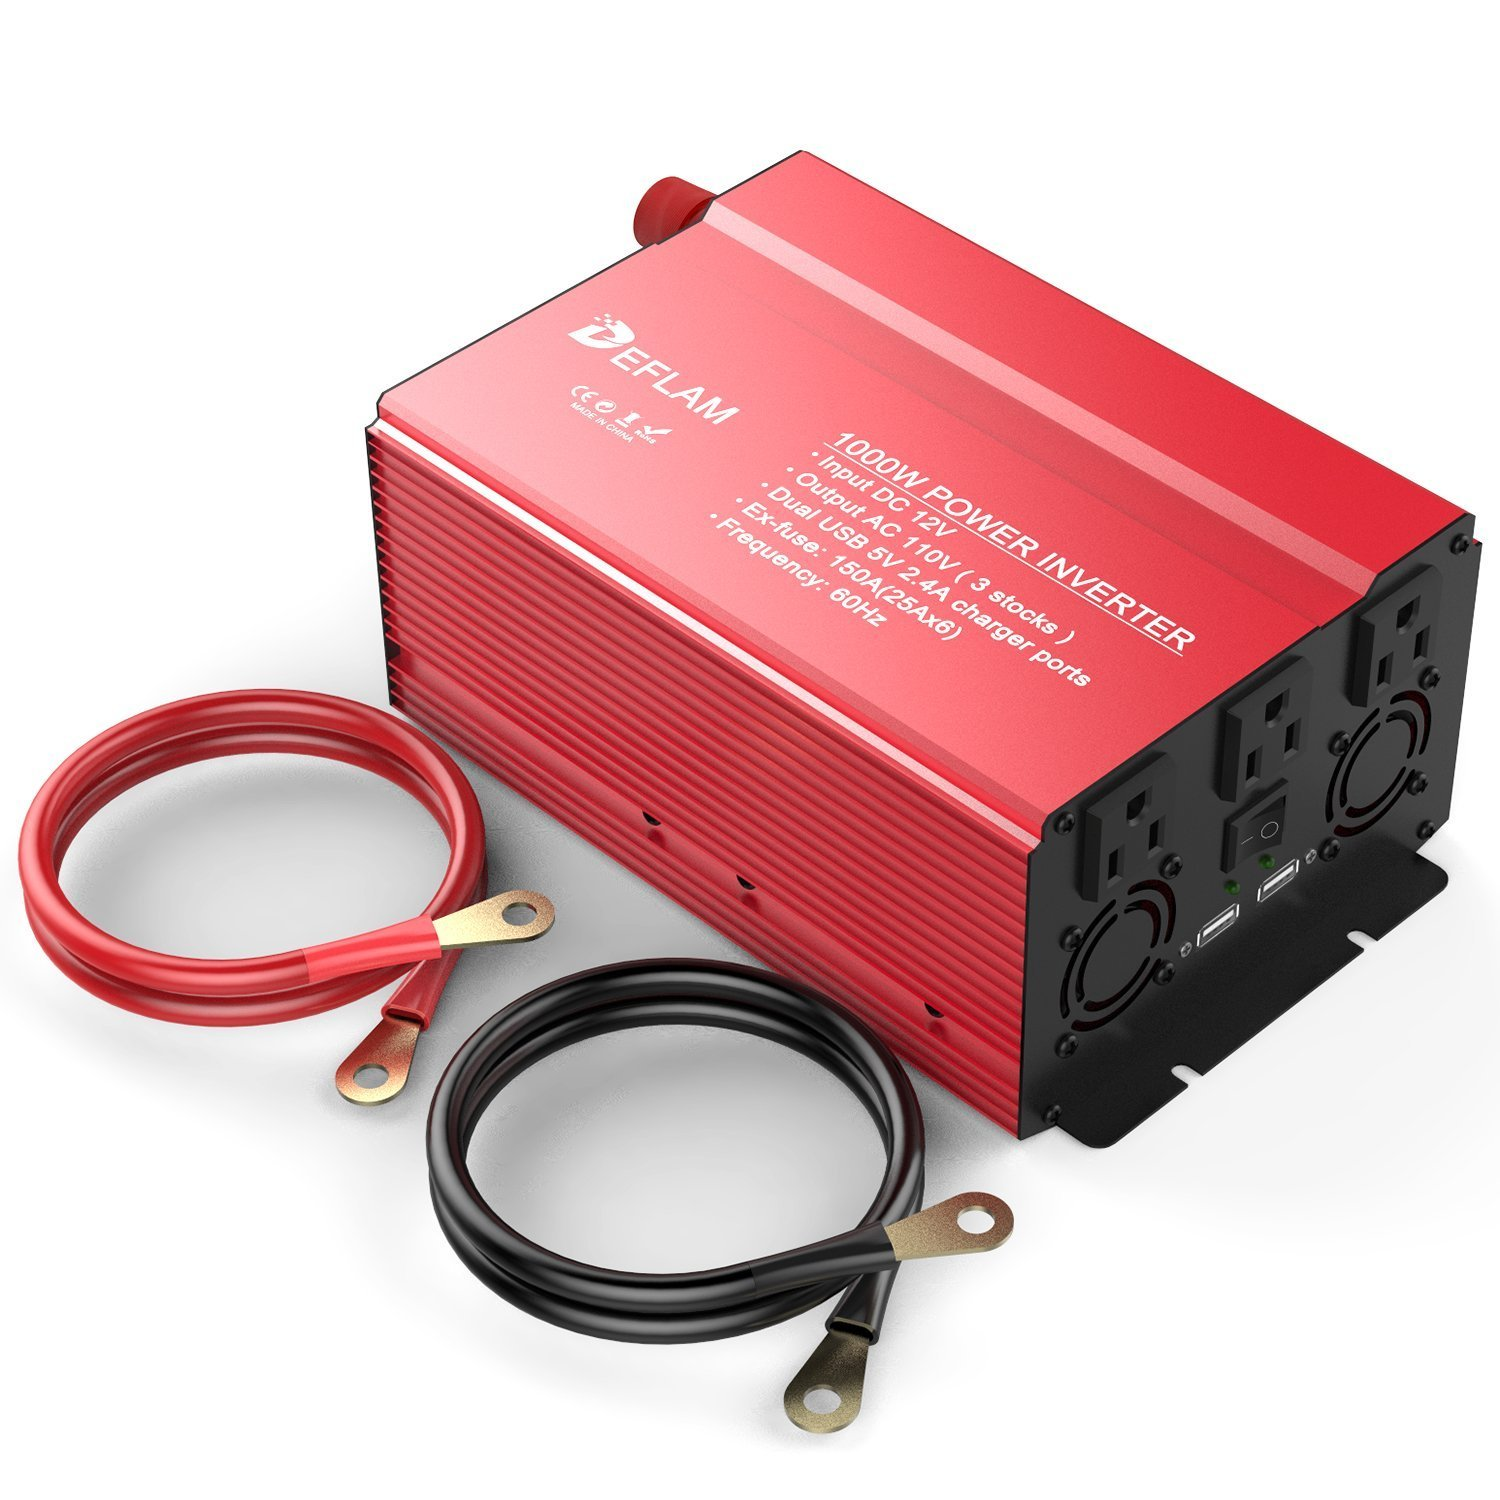 1000w Inverter Power Dc 12v To 110v Ac Car Converter With 3 Outlets 24a Dual Usb Charging Ports Automotive